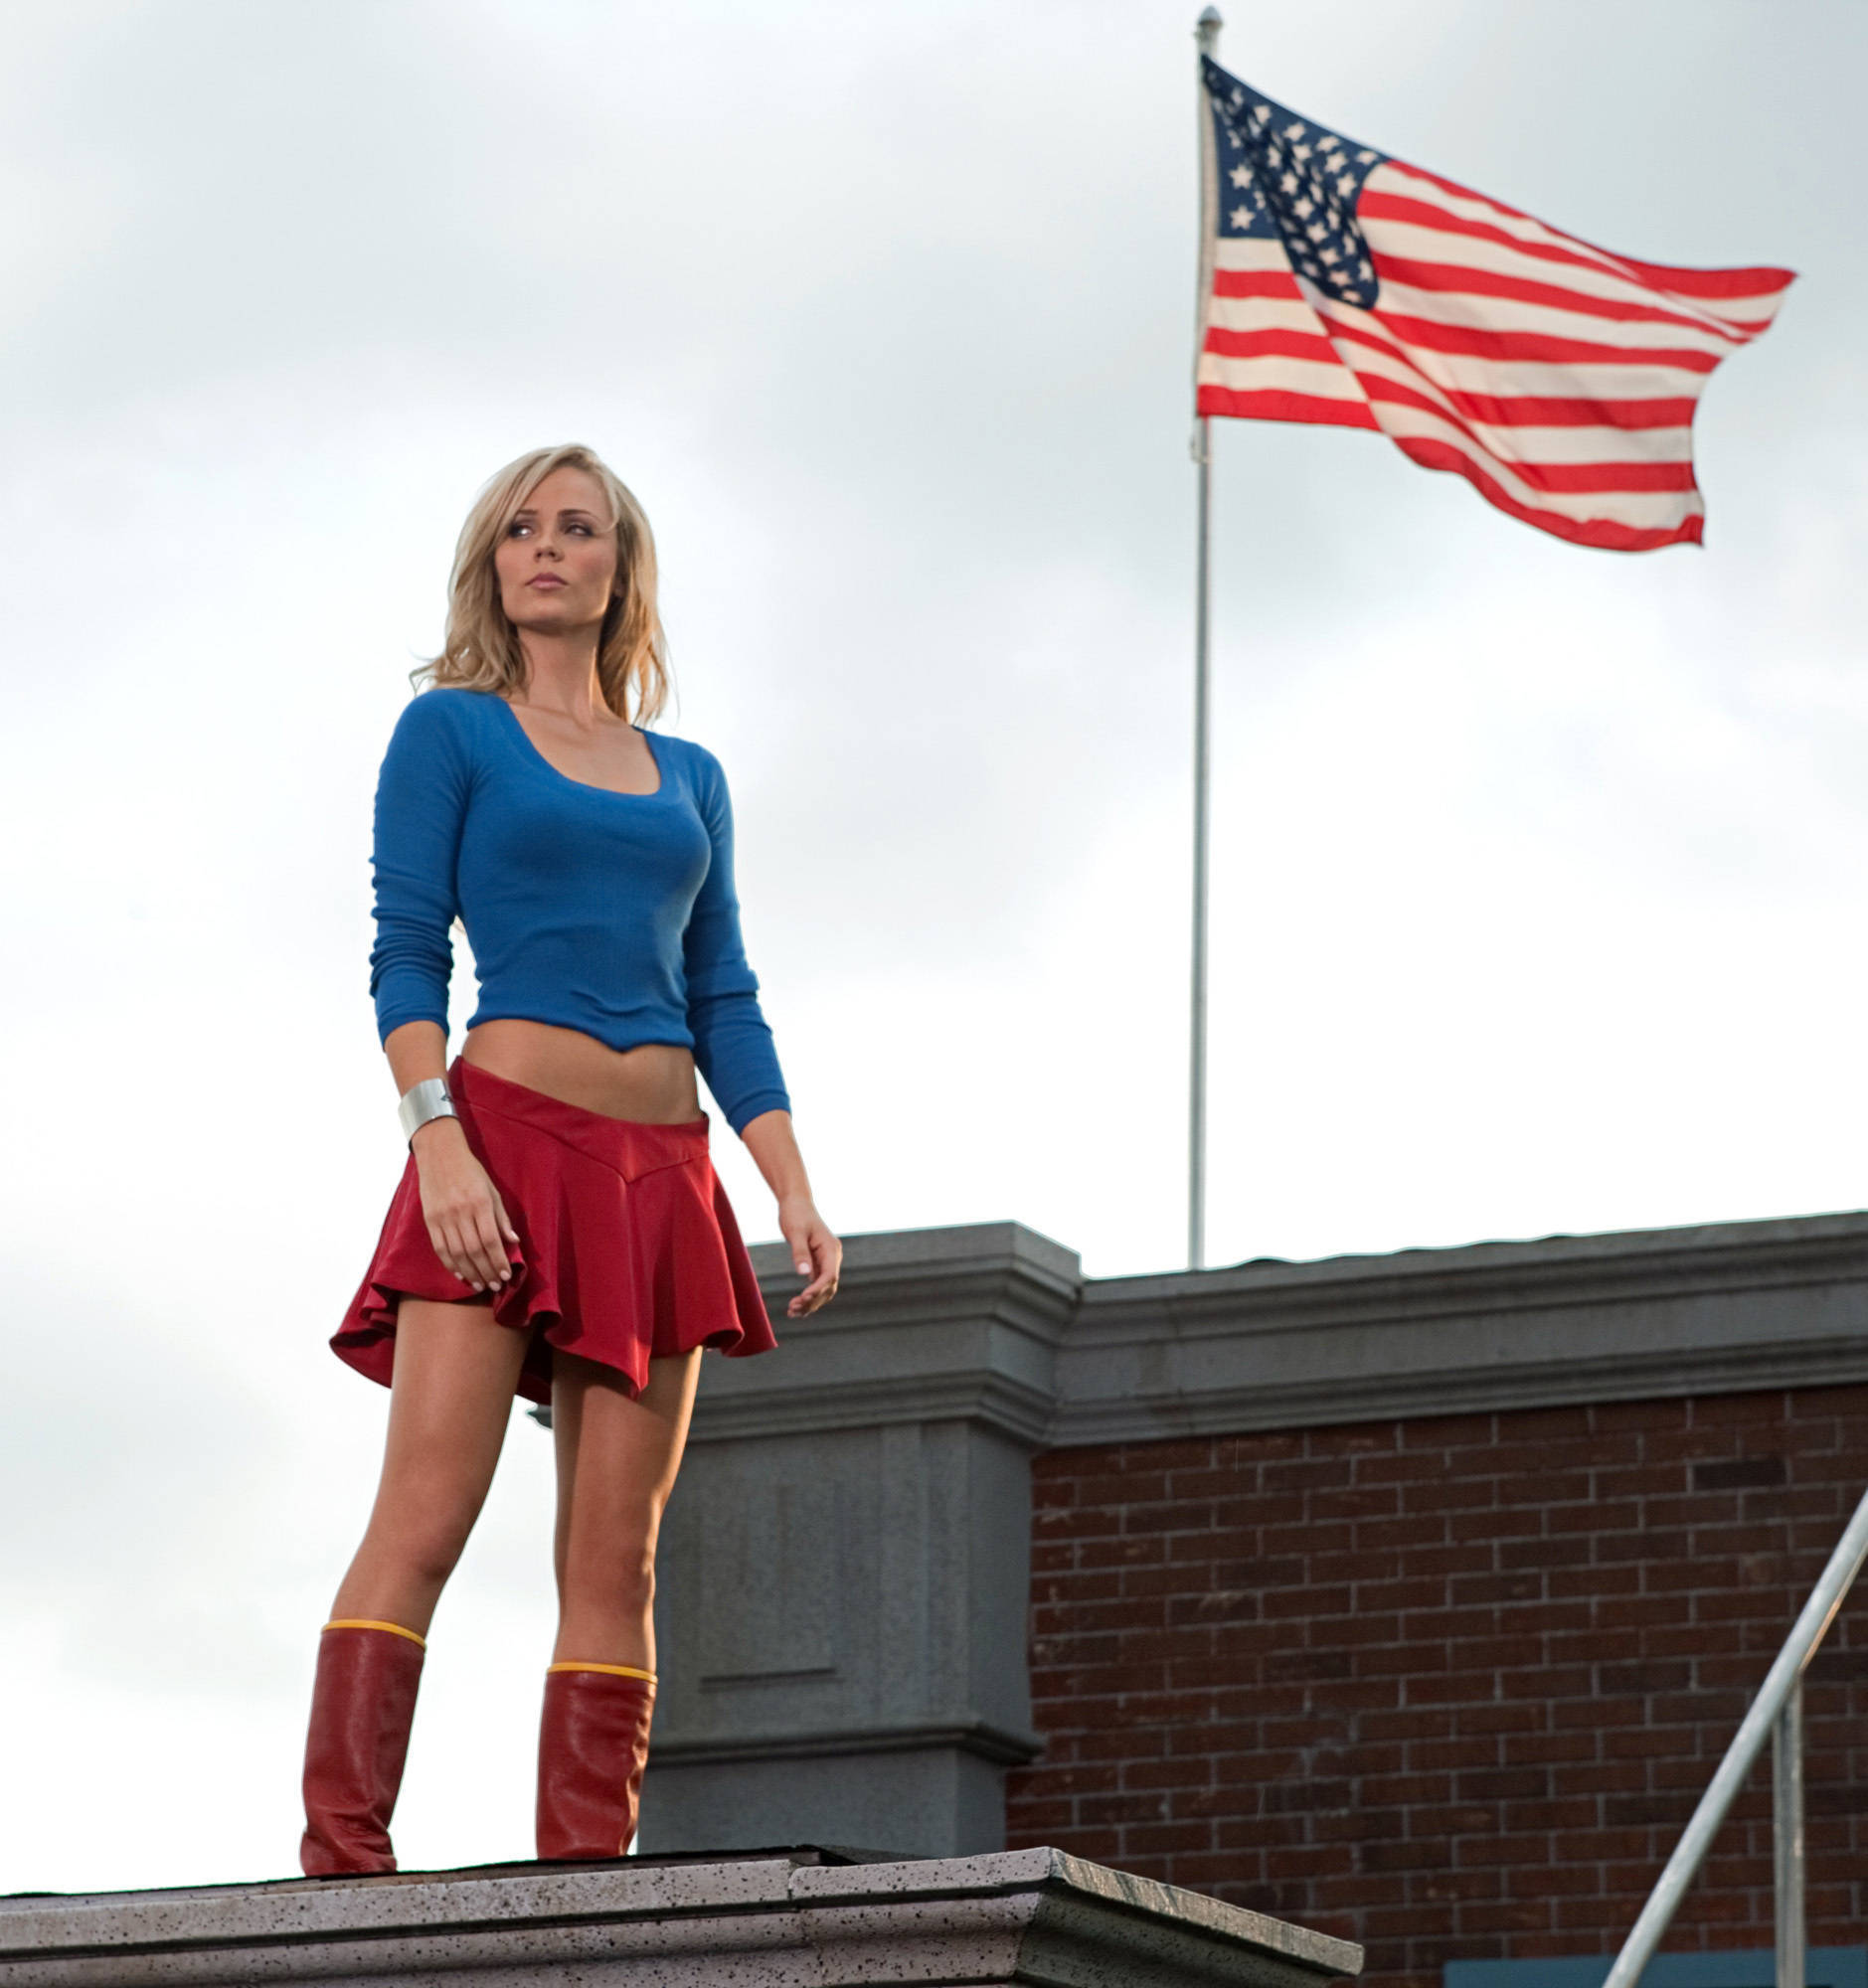 blondes woman dc comics HD Wallpaper